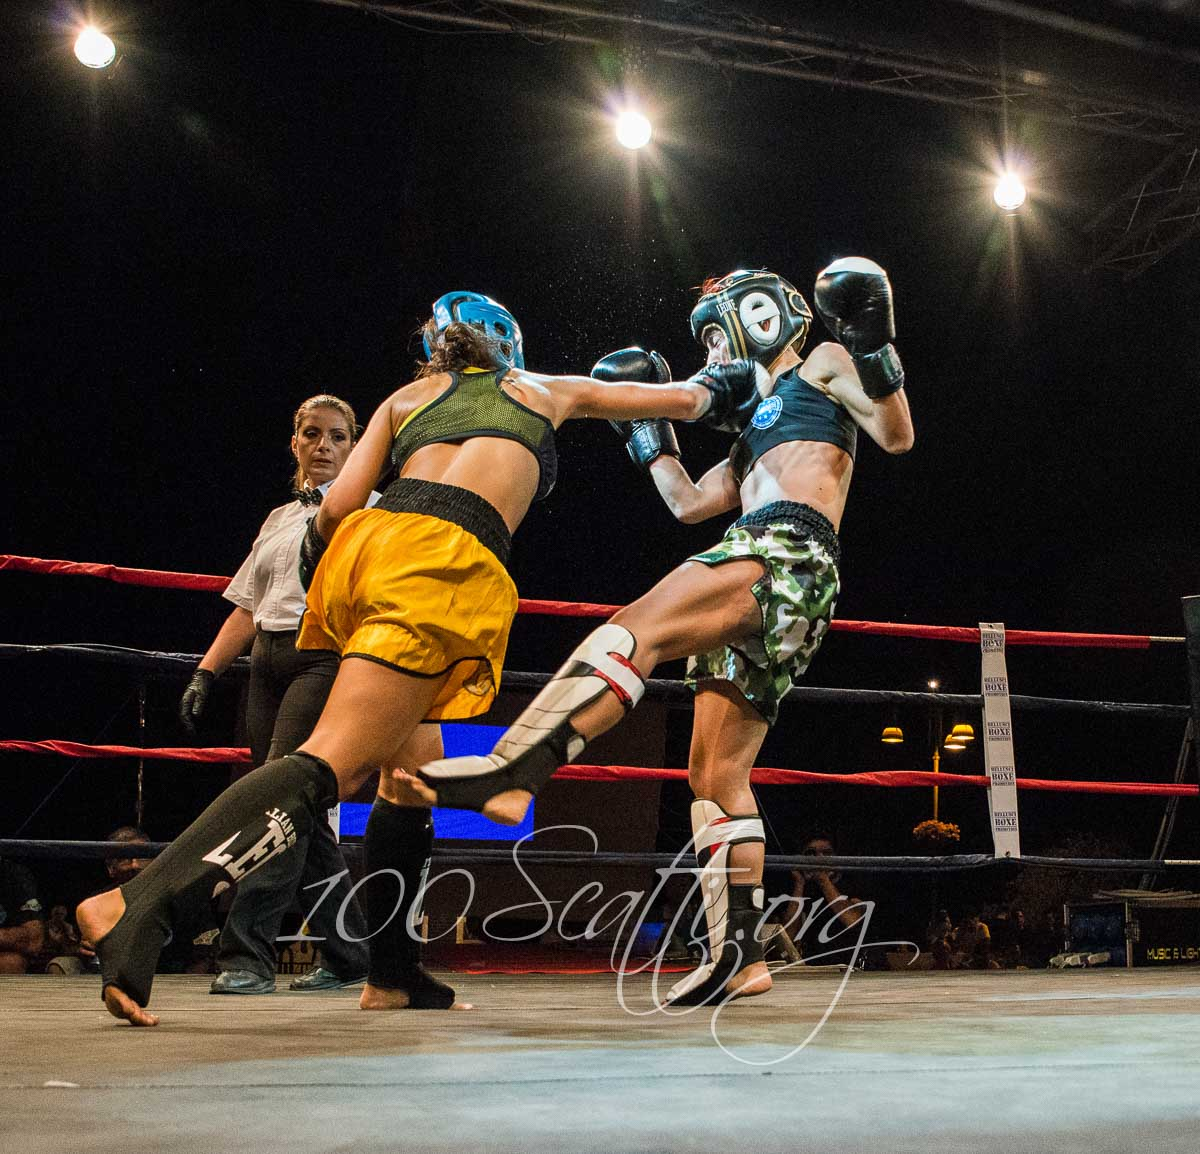 Kick-Boxing-015.jpg